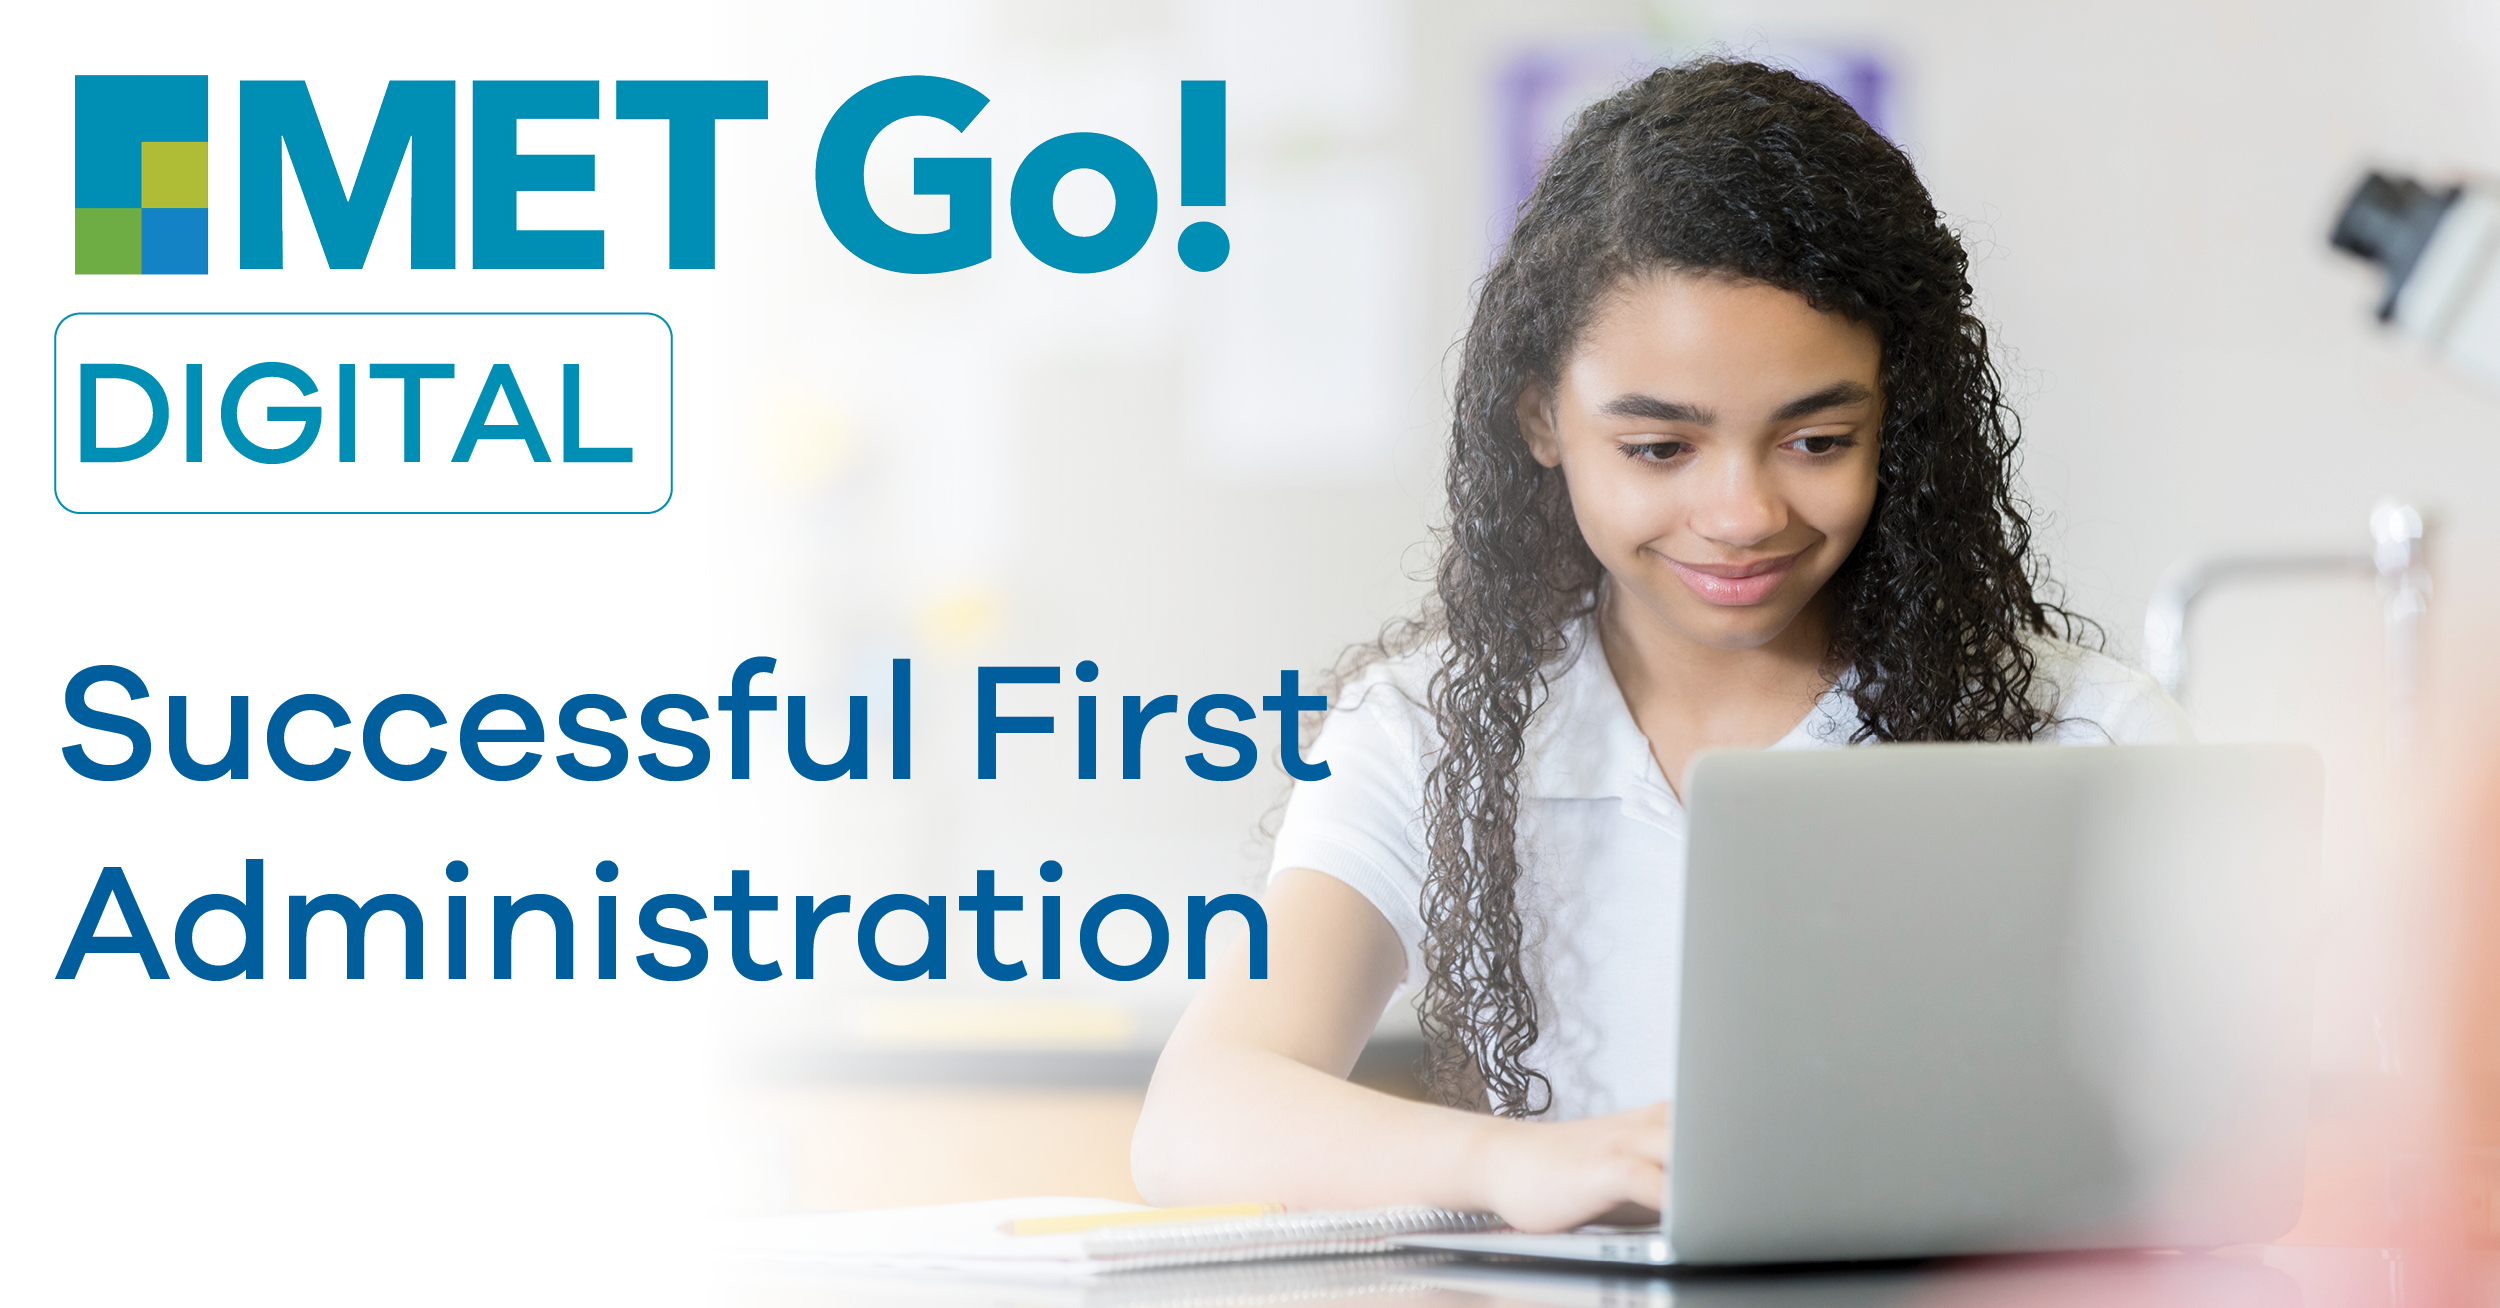 Successful First Administration of MET Go! Digital